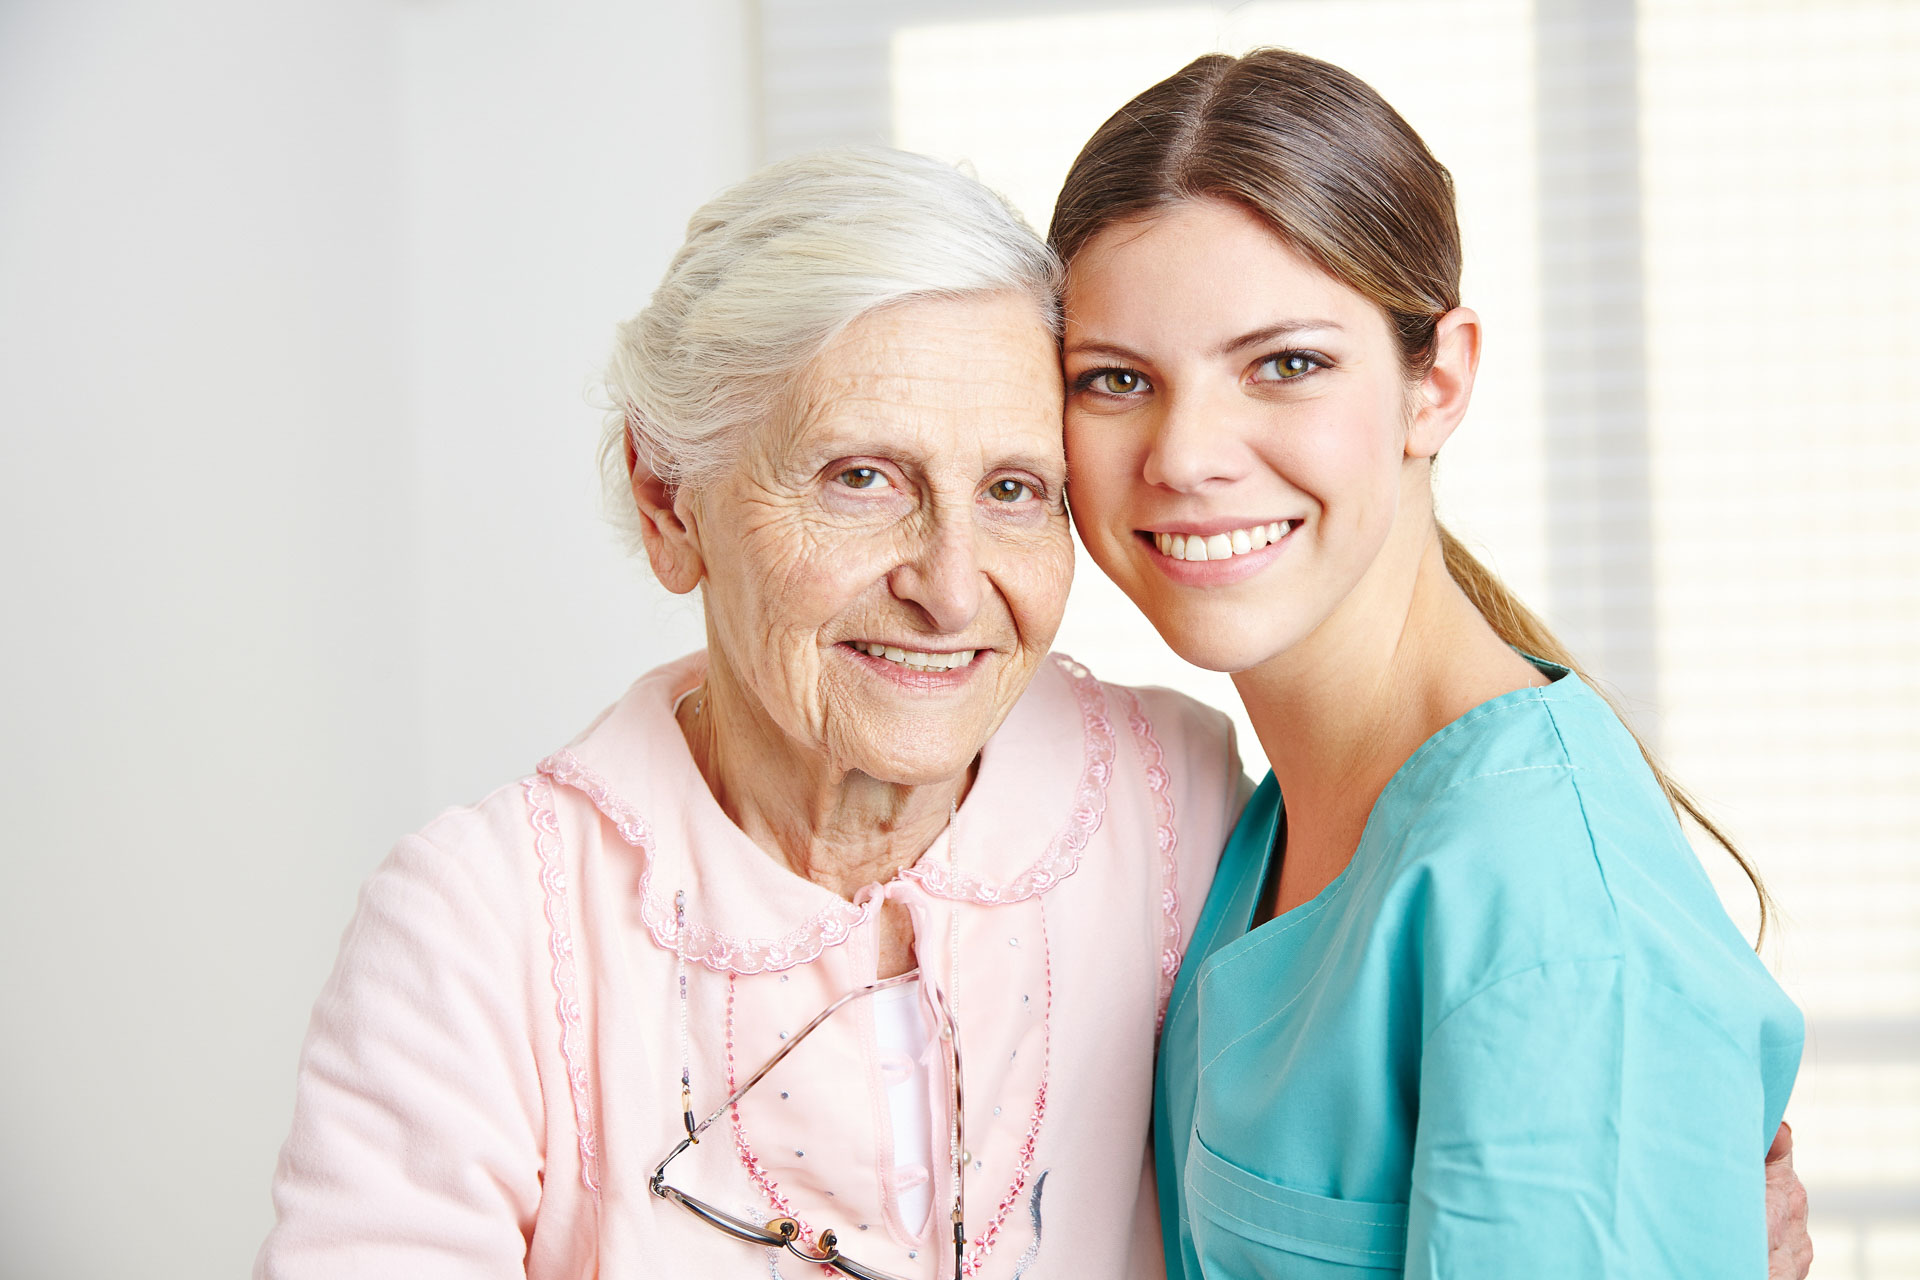 Personal Care Care Services